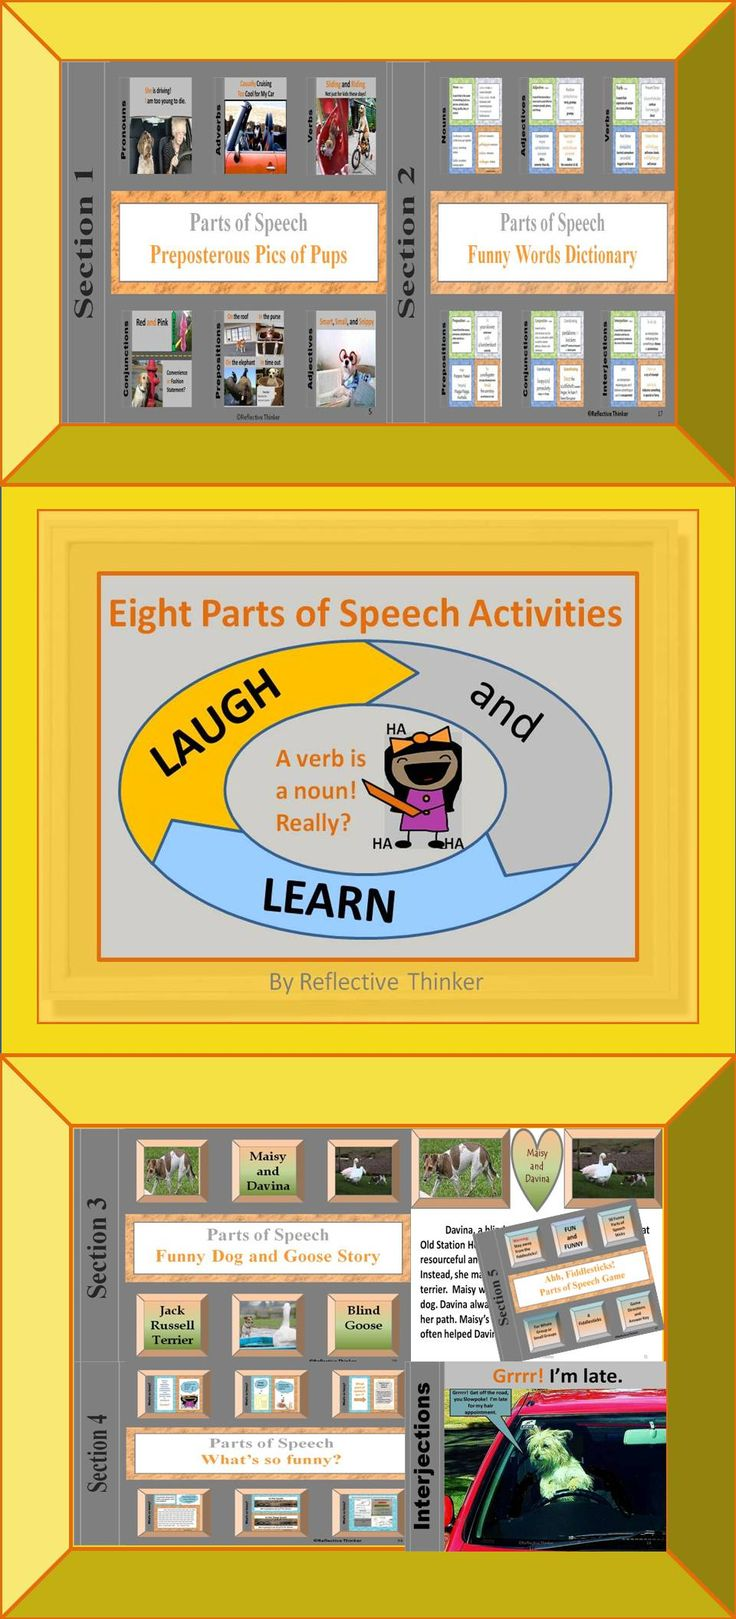 FUN! Use this resource for an engaging review of the parts of speech.  100+ humorous items!  LAUGHTER stimulates the brain which increases alertness and enhances retention of information.  Humor is infused throughout the five engaging activities found in this 56-slide PowerPoint resource designed to further students' knowledge of the parts of speech as well as provide opportunities for students to practice higher level thinking skills. #partsofspeech